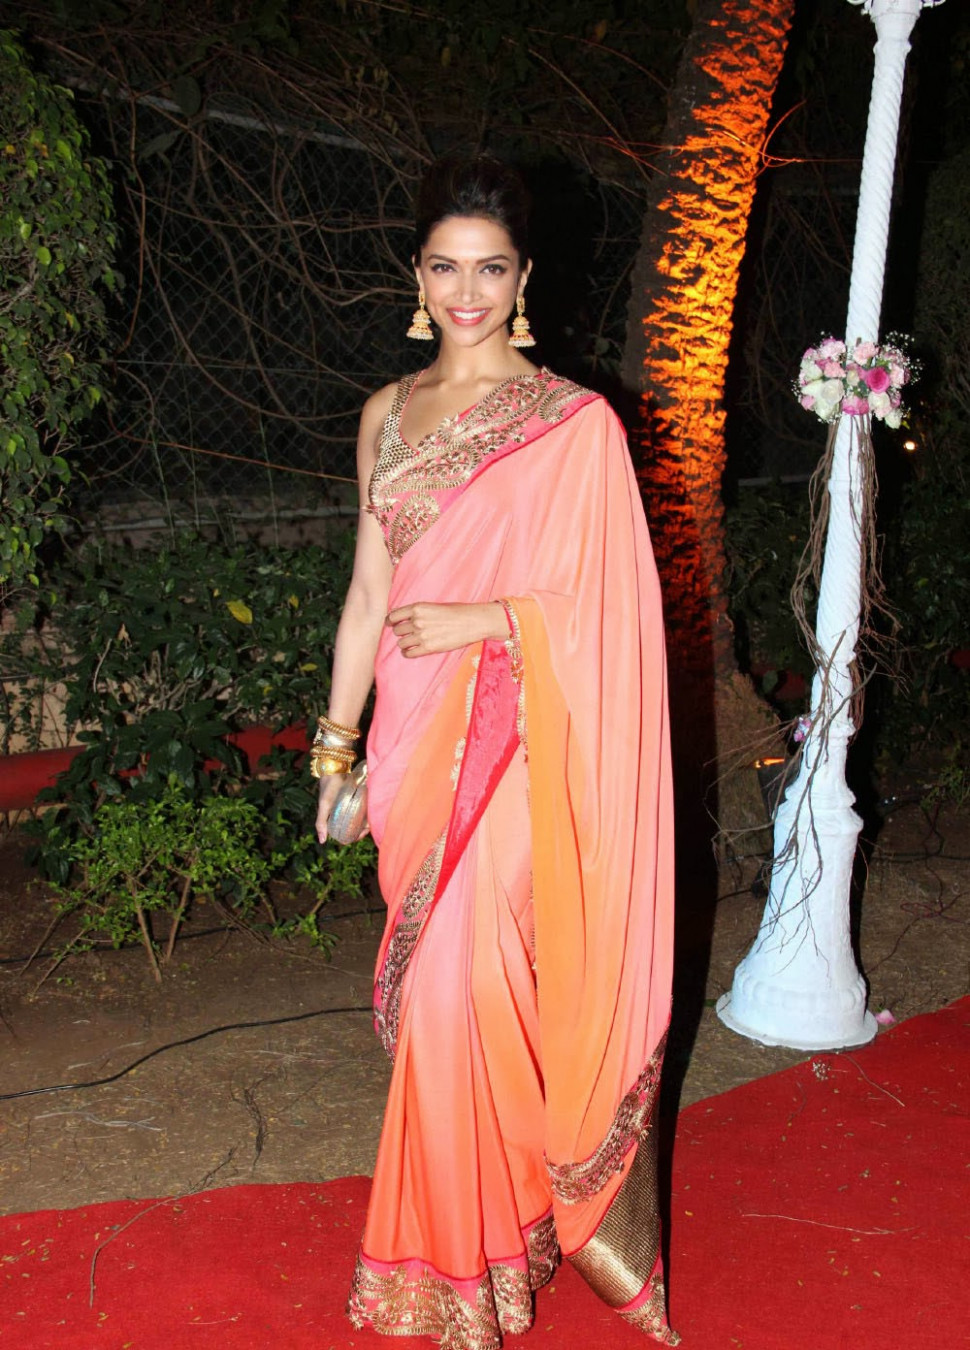 Deepika Padukone in pink saree At Ahana Deol's Wedding